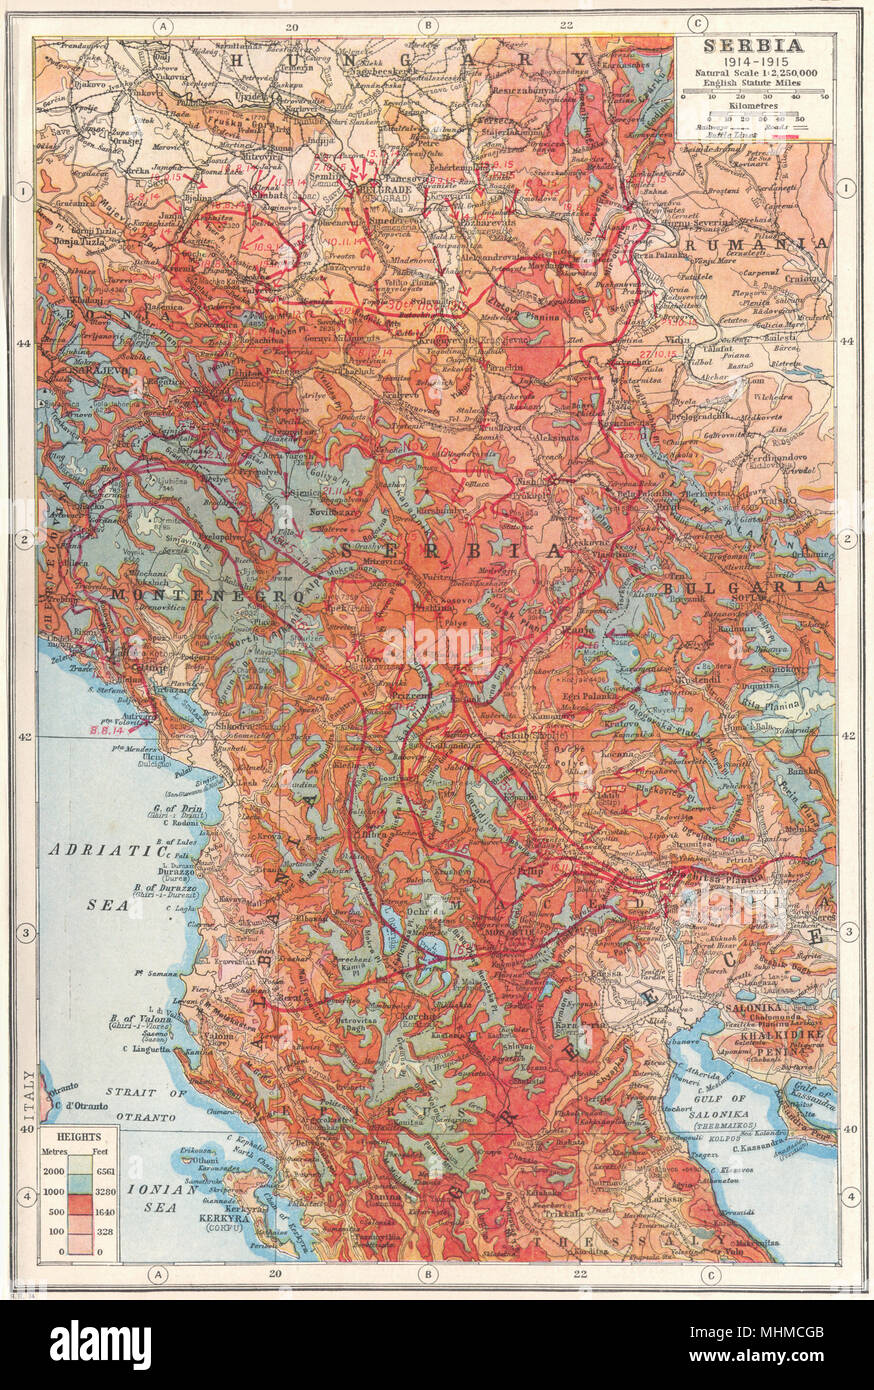 Map Of The World 1920.Serbia Macedonia Montenegro 1914 1915 Battle Lines First World War